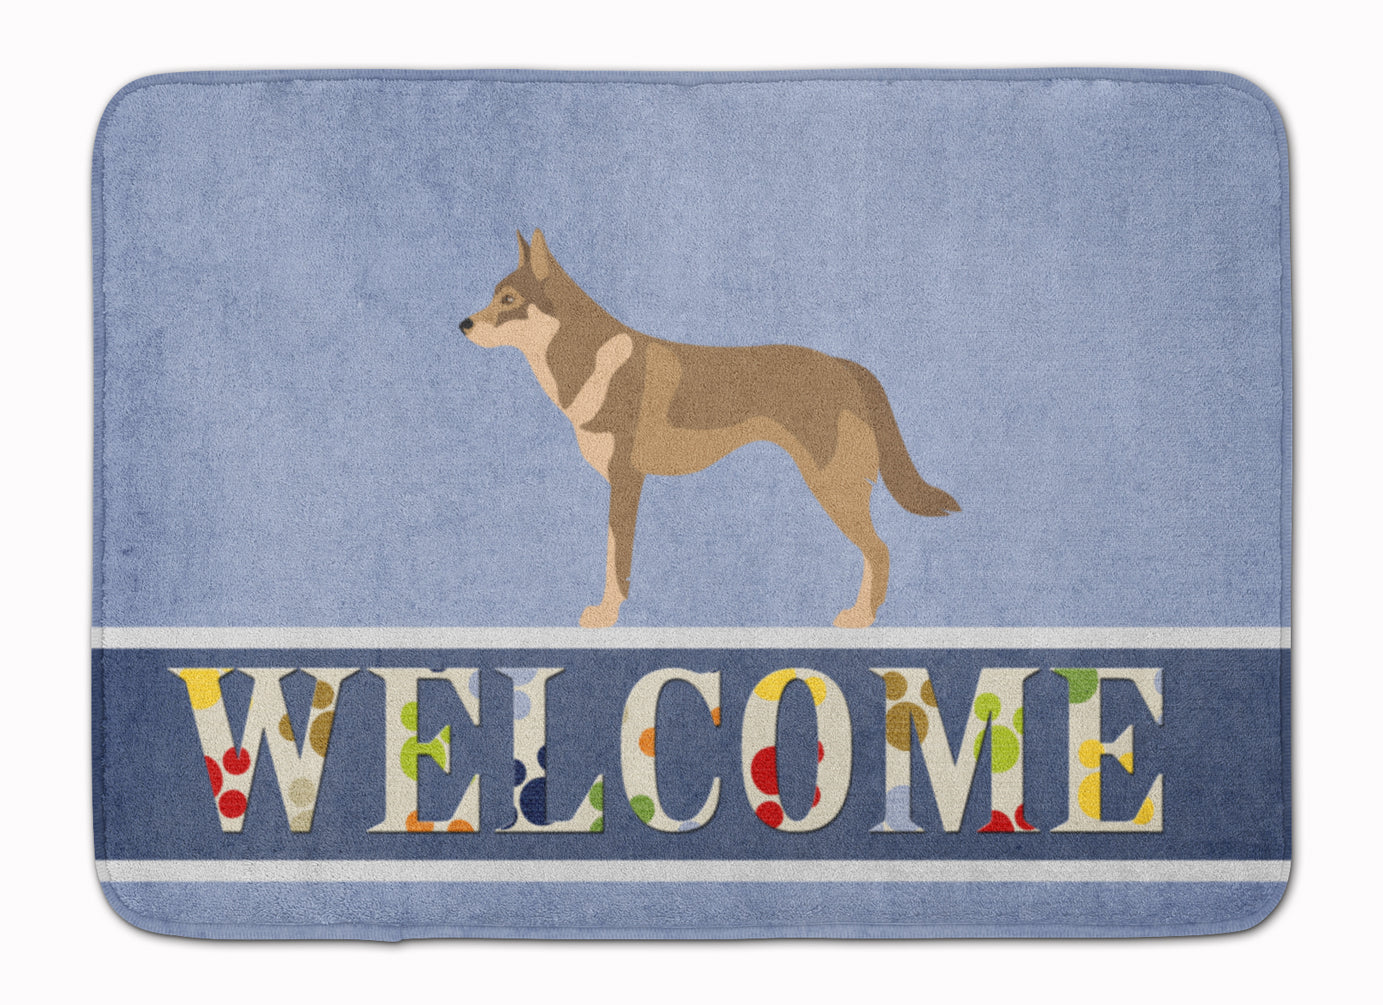 Czechoslovakian Wolfdog Machine Washable Memory Foam Mat BB8335RUG by Caroline's Treasures